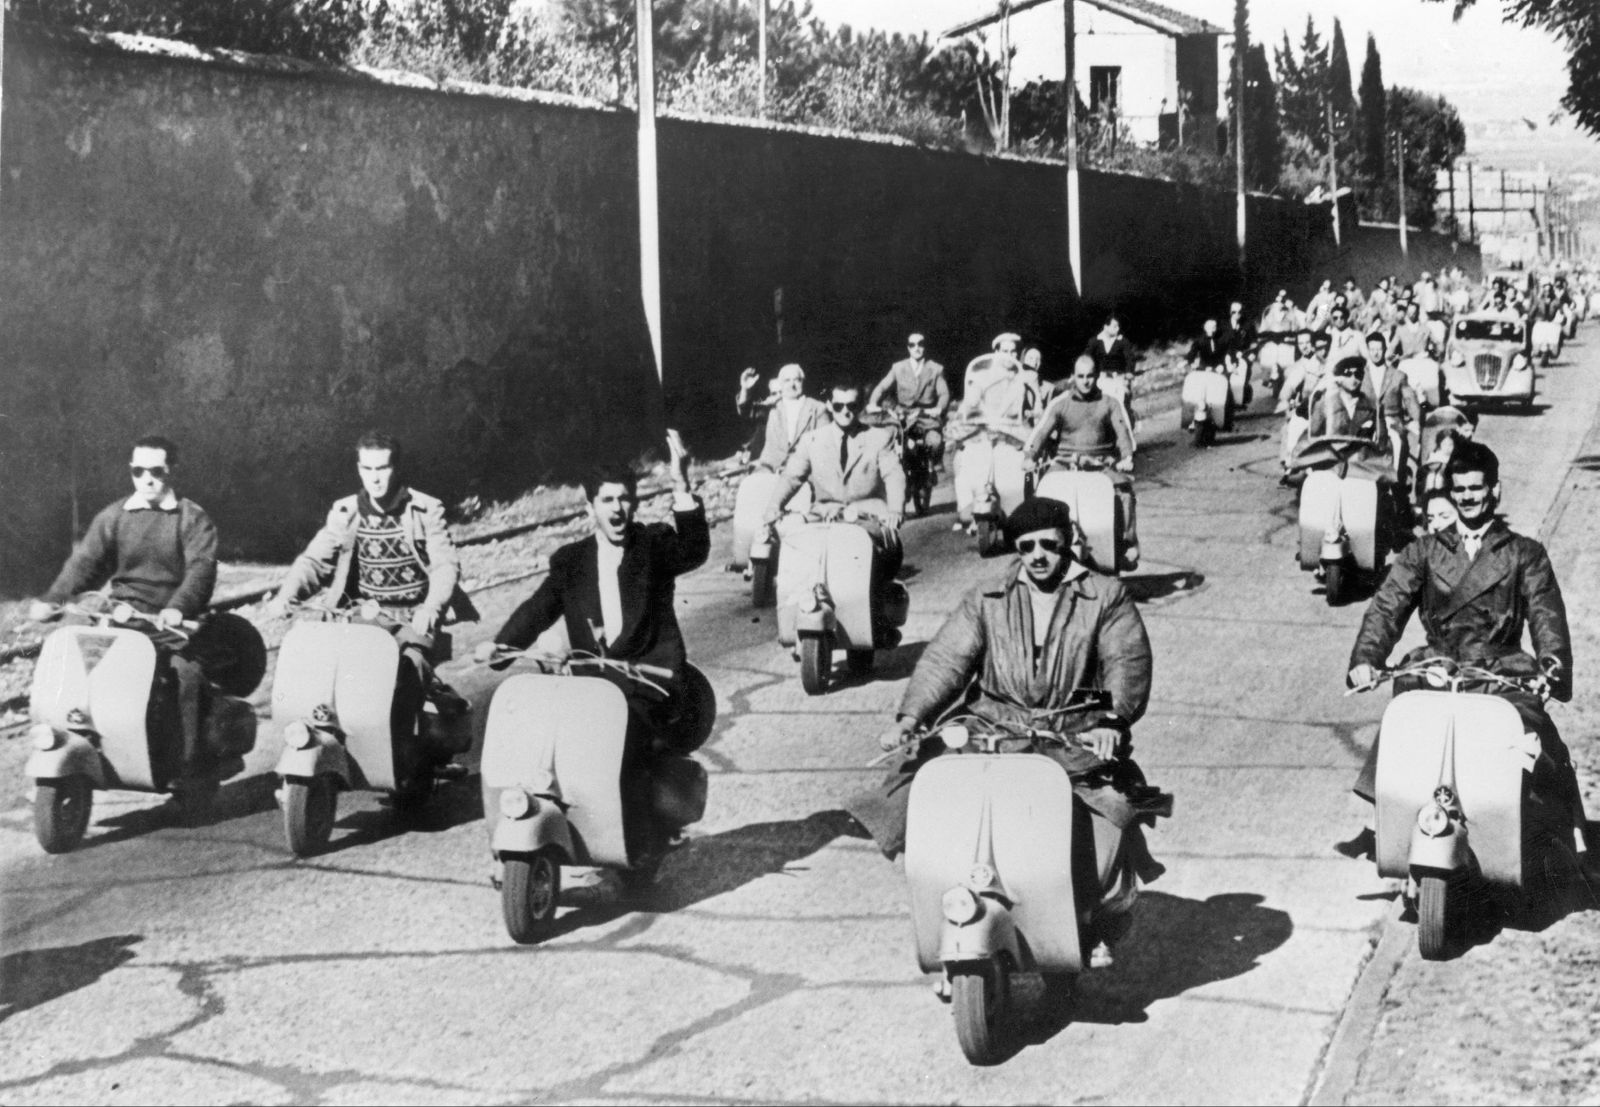 Vespa Scooter Race From Roma In Italy In 1949.